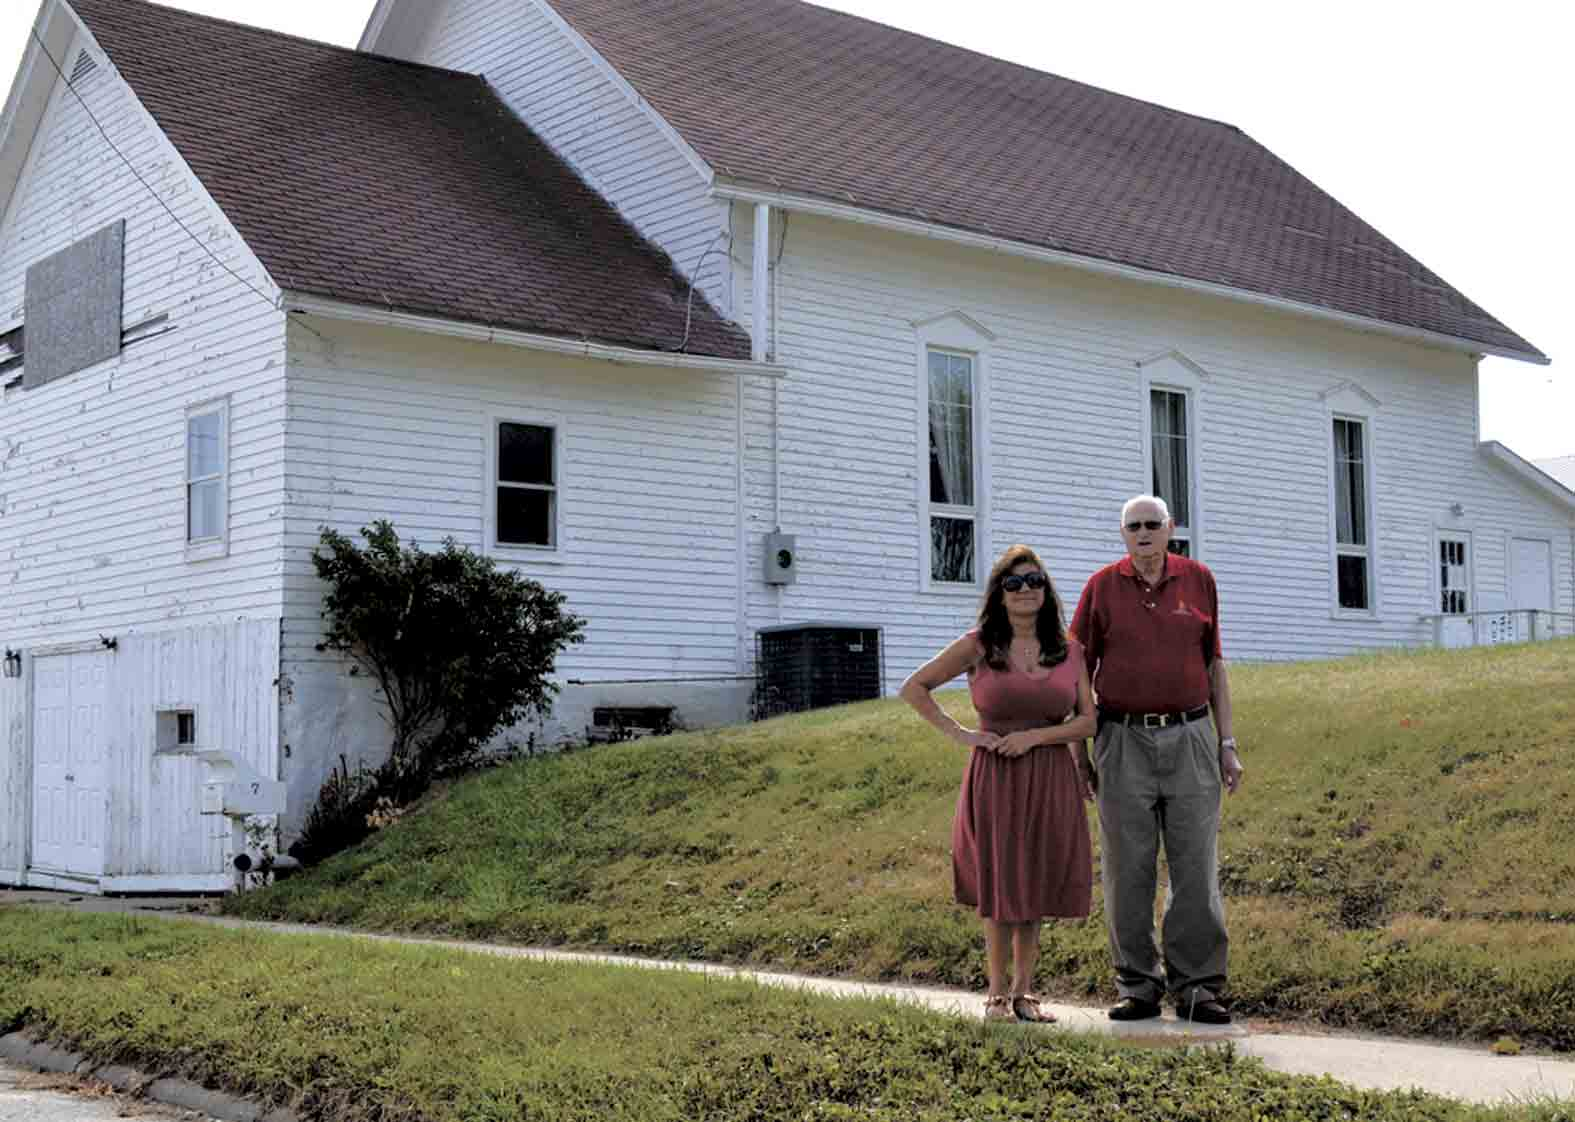 David Goldsmith (right), the son of a former pastor at the Wesleyan Church in West Union, spearheaded the efforts to move the now-empty church to Heritage Farm Park near Clermont nearly a year ago. Goldsmith, who now resides in Loveland, Colo., recently made a visit to his childhood...